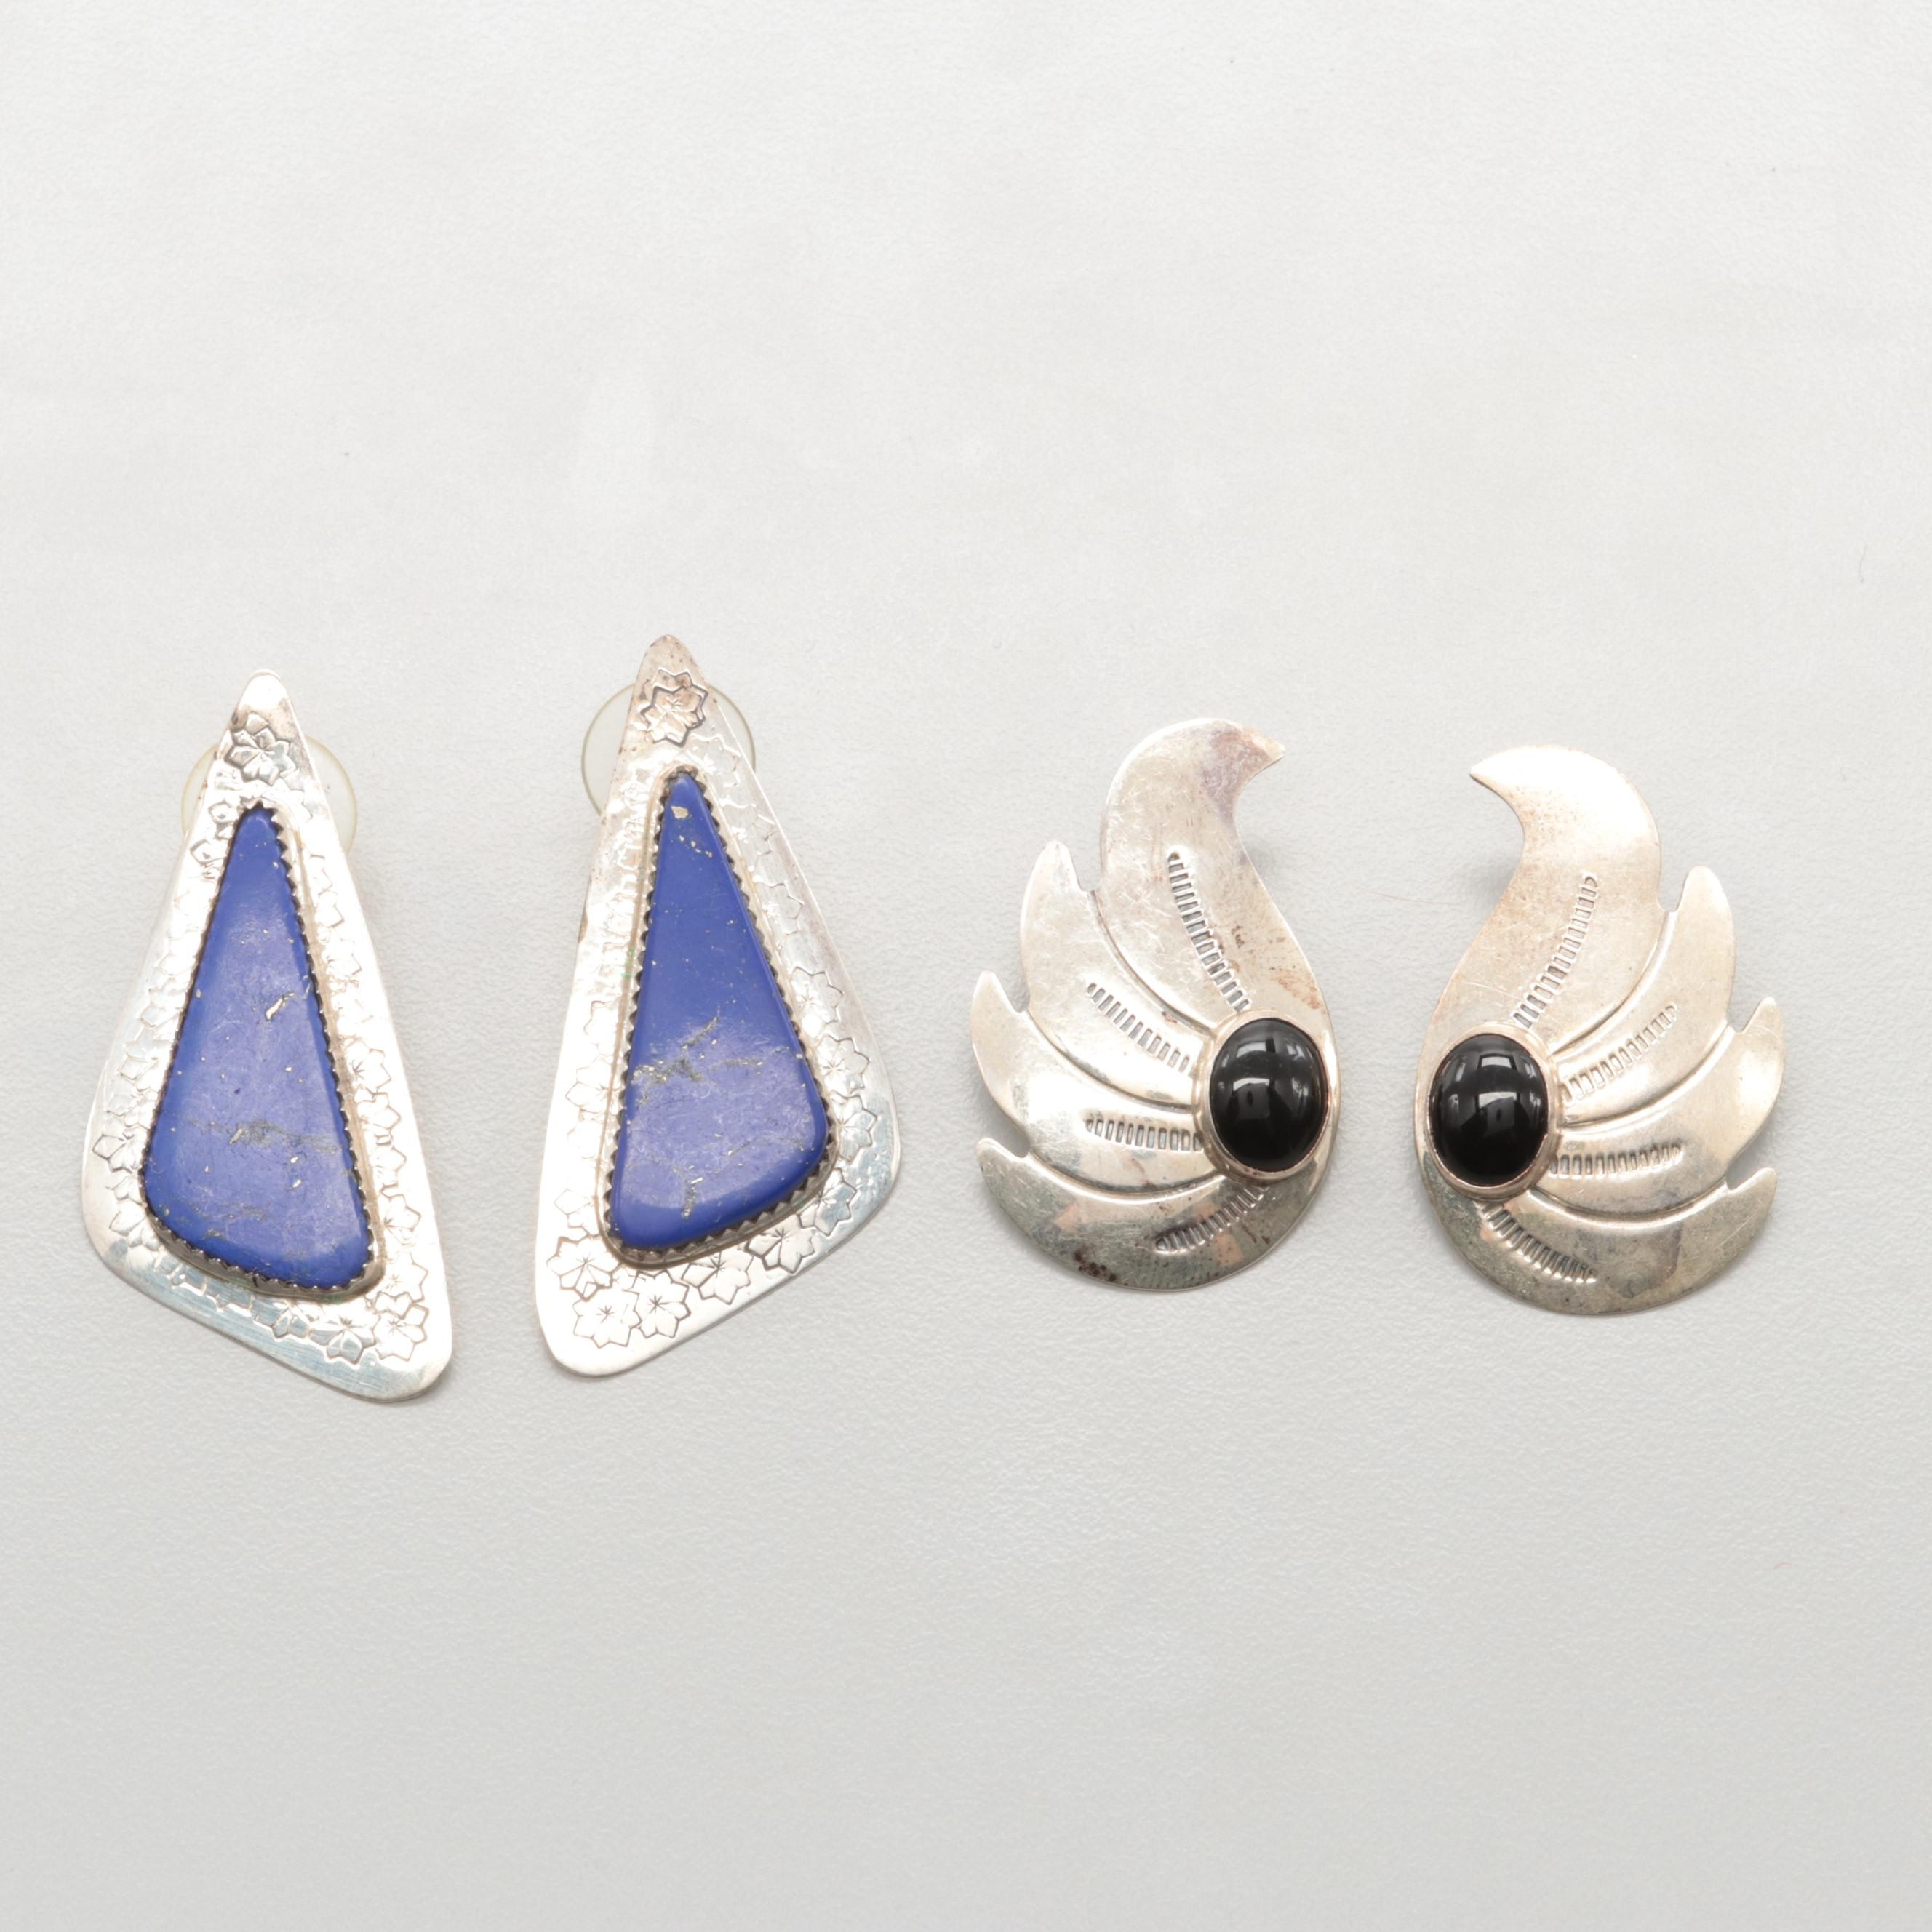 Southwest Sterling Silver Black Onyx and Imitation Lapis Lazuli Earrings